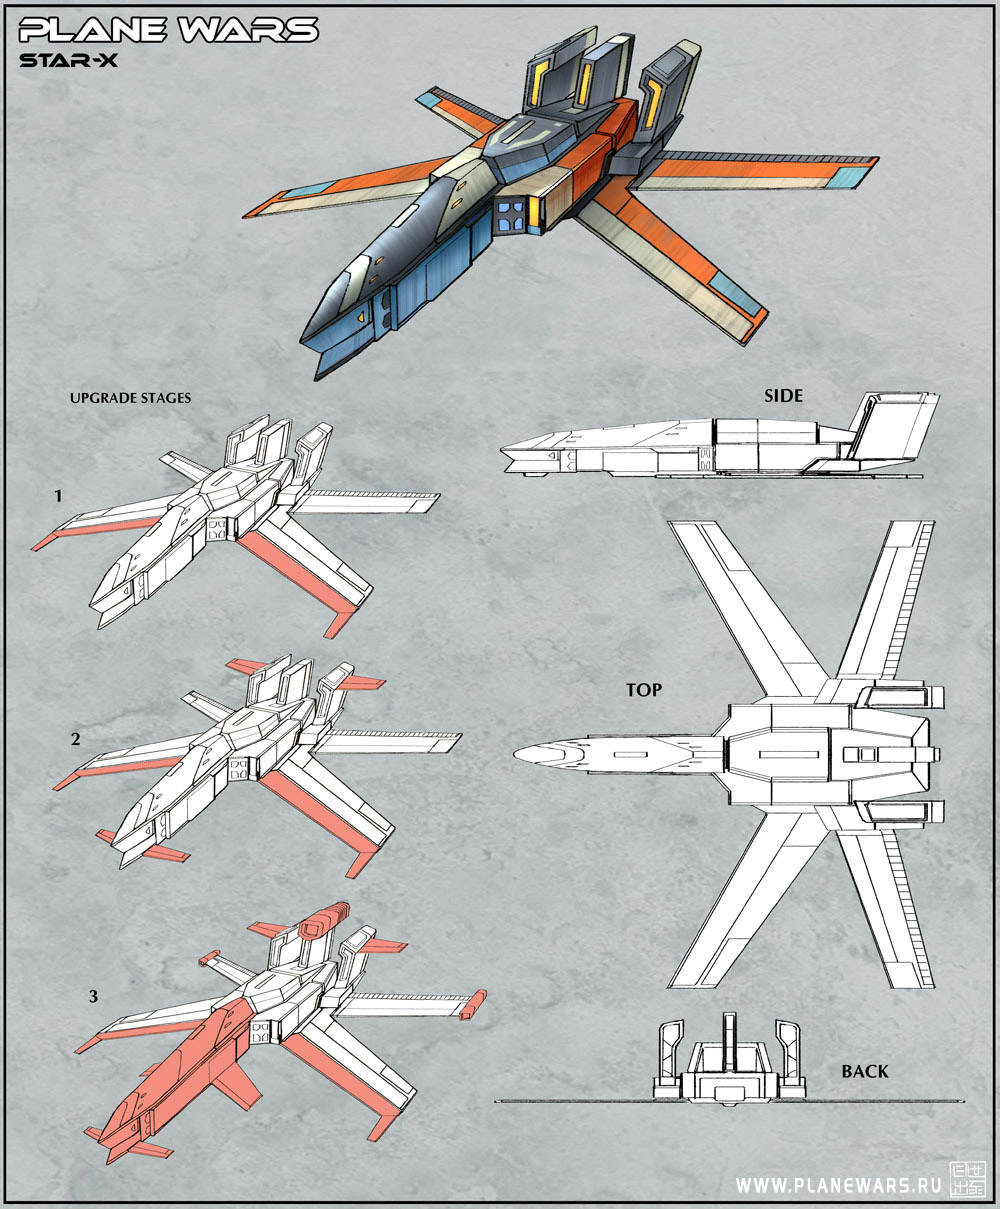 Plane Wars - Star X by Hideyoshi